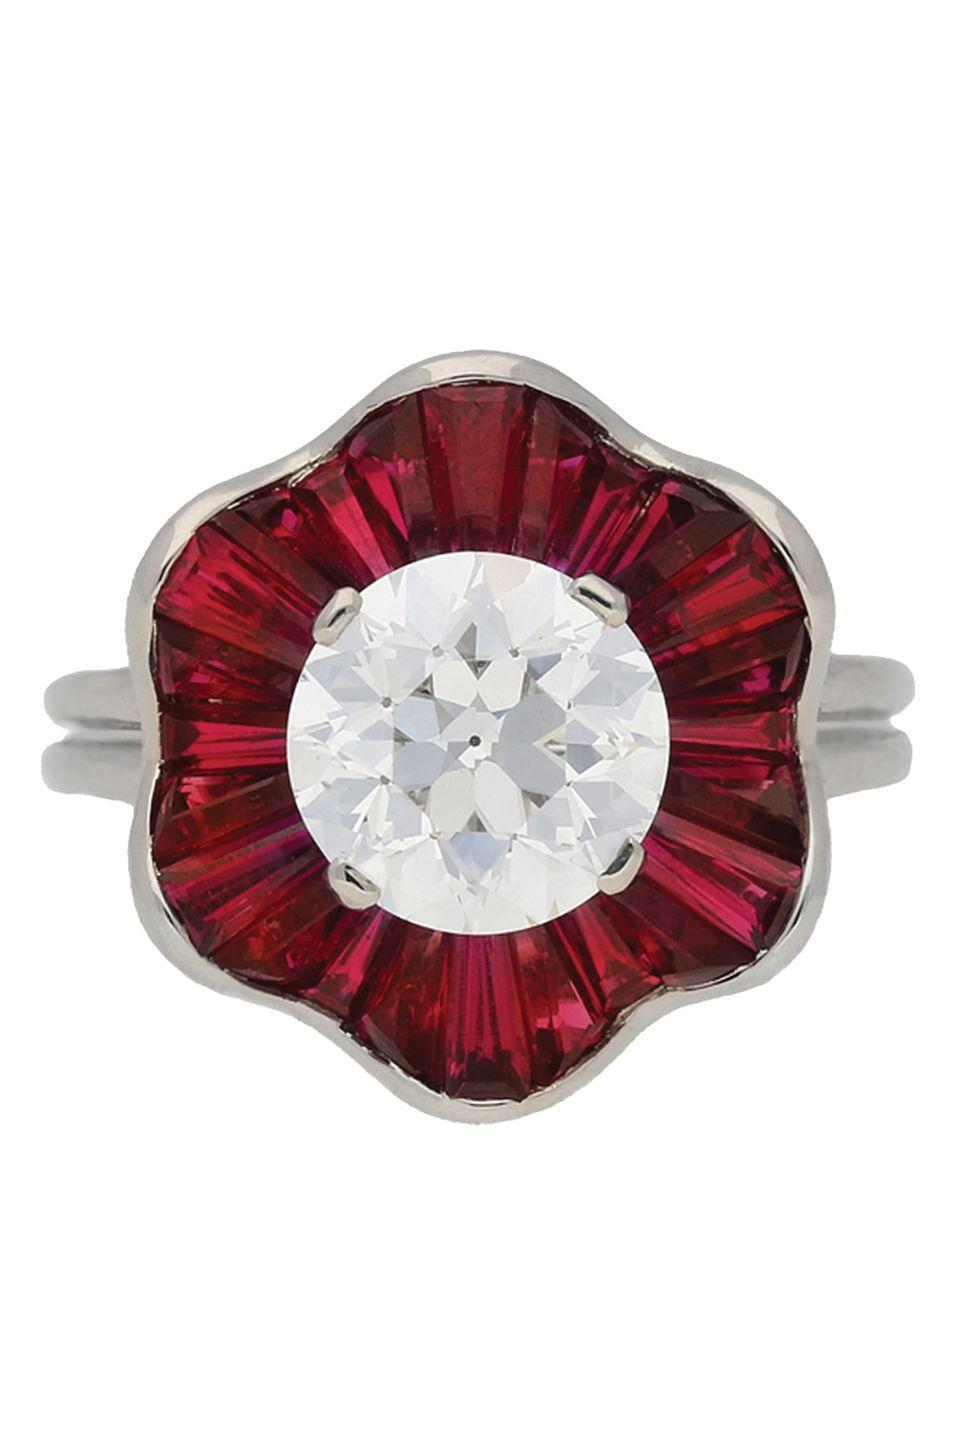 "<p><strong>Oscar Heyman Bro<em>s </em></strong><em>Ruby and Diamond Cluster Ring, circa the 1970s, $68,950.45, <a href=""https://www.1stdibs.com/jewelry/rings/engagement-rings/1970s-oscar-heyman-brothers-ruby-diamond-platinum-cluster-ring/id-j_1347423/"" rel=""nofollow noopener"" target=""_blank"" data-ylk=""slk:1stdibs.com"" class=""link rapid-noclick-resp"">1stdibs.com</a></em></p><p><a class=""link rapid-noclick-resp"" href=""https://go.redirectingat.com?id=74968X1596630&url=https%3A%2F%2Fwww.1stdibs.com%2Fjewelry%2Frings%2Fengagement-rings%2F1970s-oscar-heyman-brothers-ruby-diamond-platinum-cluster-ring%2Fid-j_1347423%2F&sref=https%3A%2F%2Fwww.harpersbazaar.com%2Fwedding%2Fbridal-fashion%2Fg7427%2Fvintage-engagement-rings%2F"" rel=""nofollow noopener"" target=""_blank"" data-ylk=""slk:SHOP"">SHOP</a></p>"